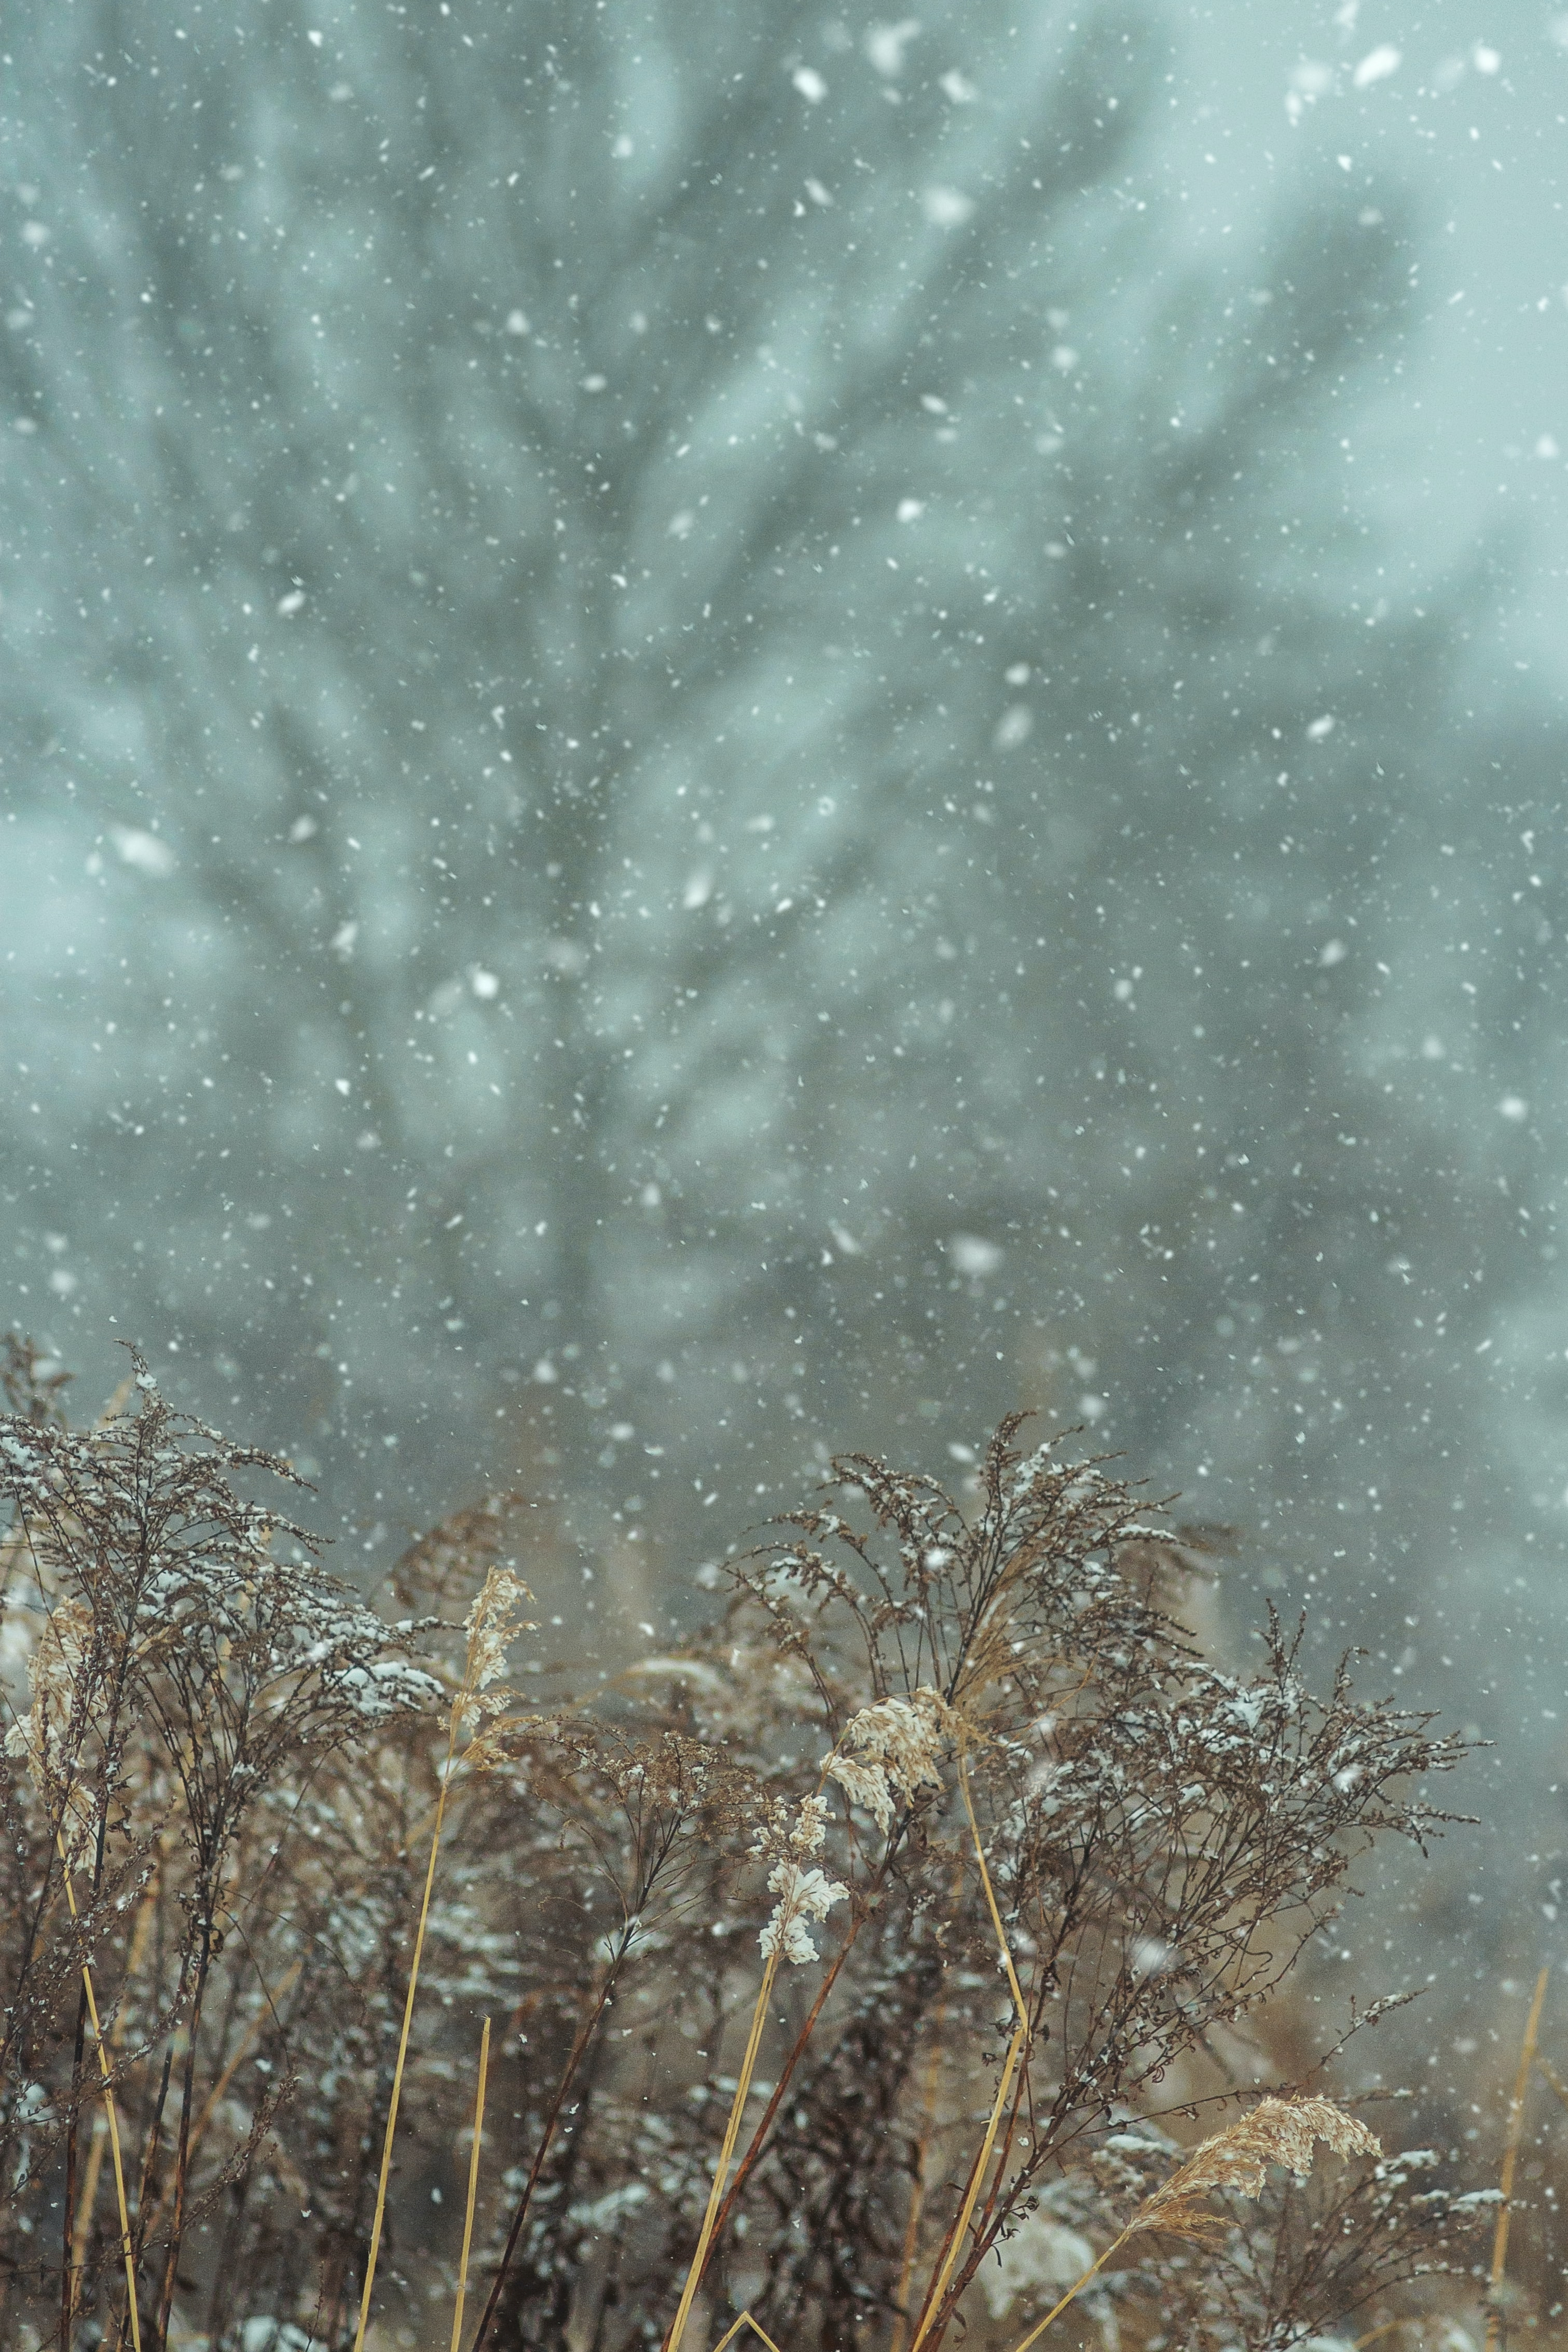 148502 download wallpaper Snow, Snowfall, Winter, Plants, Nature screensavers and pictures for free